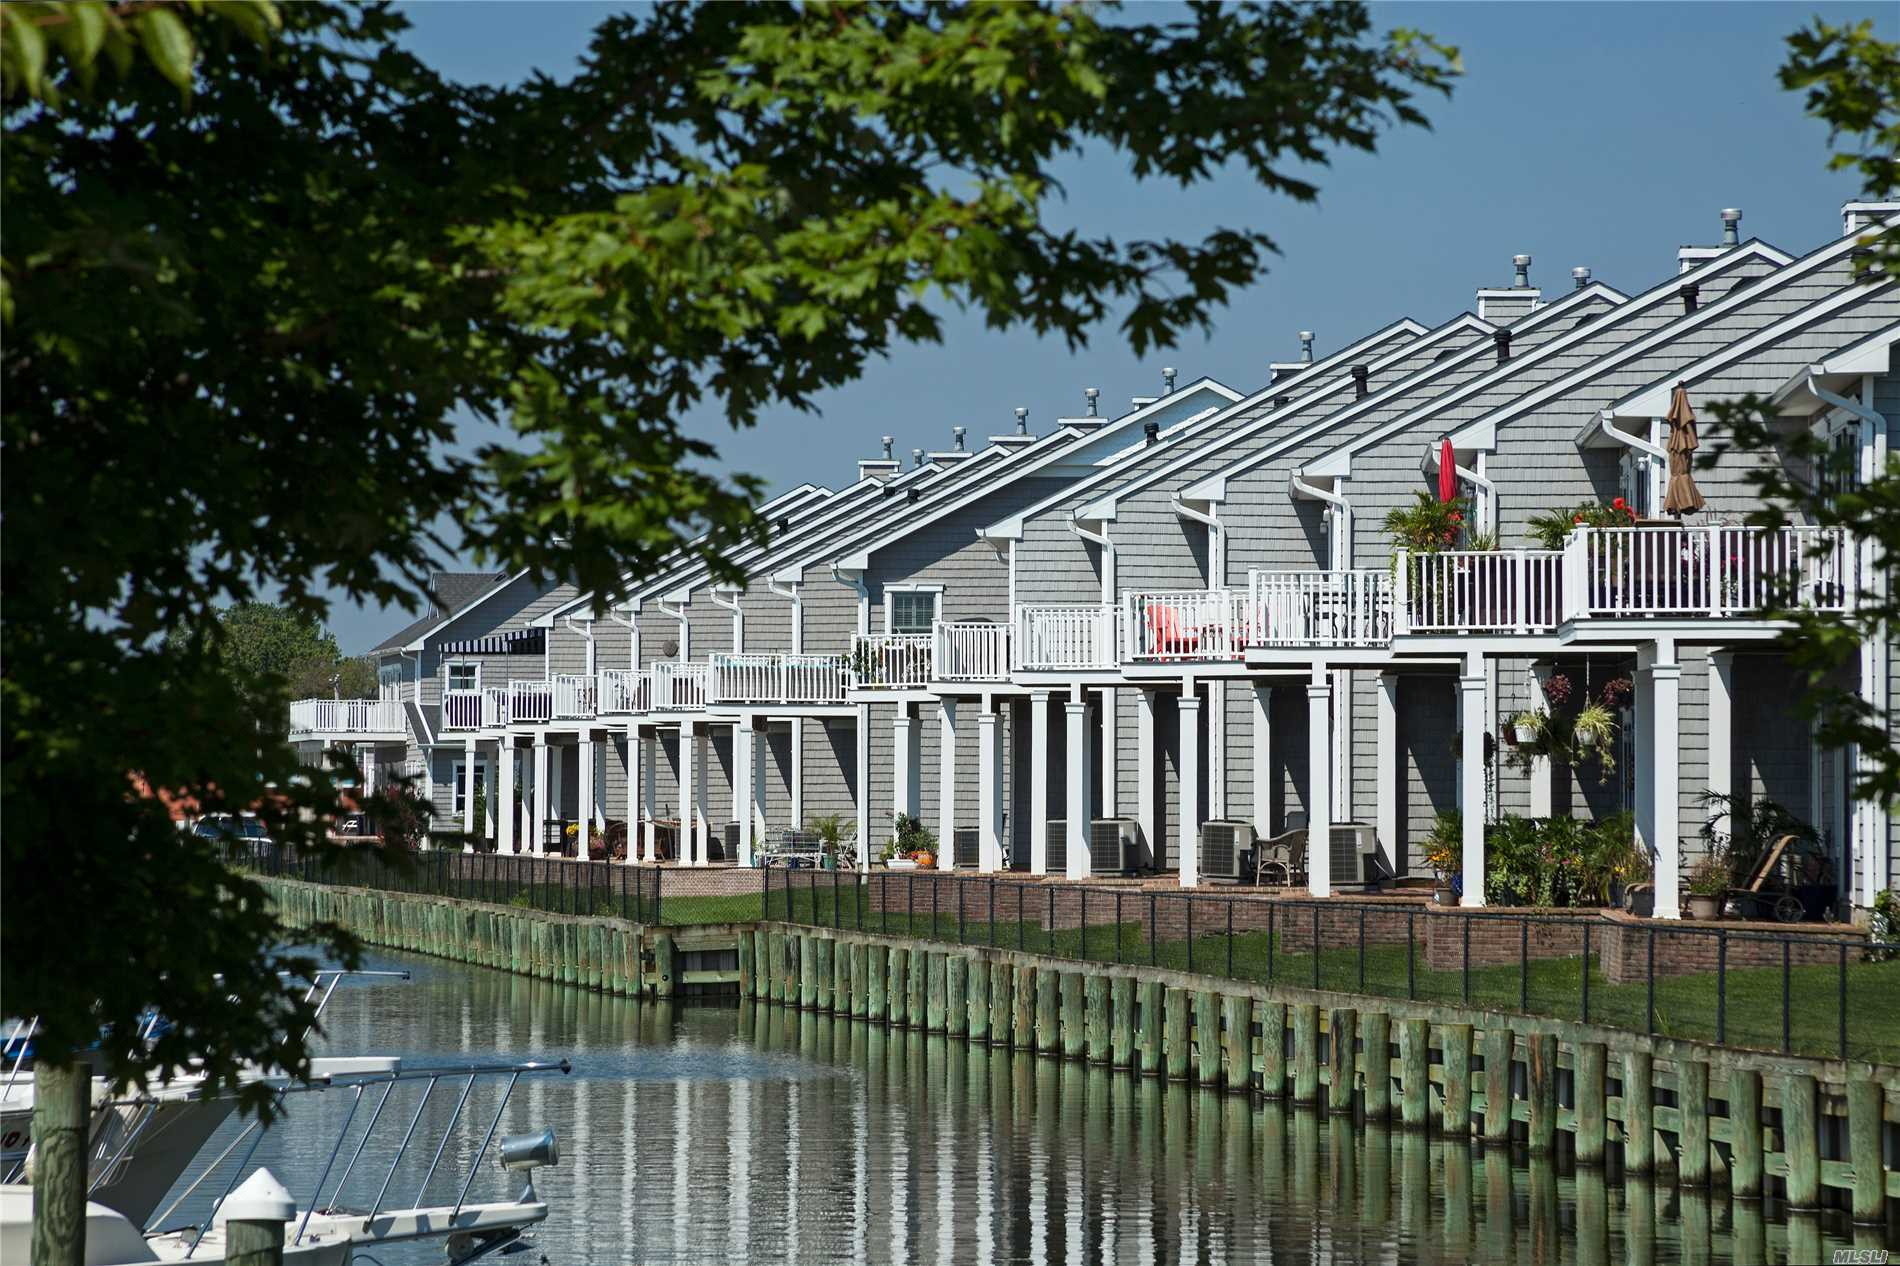 Boaters Heaven !  Luxury Condo's Overlooking Your Deeded Boat Slip. Great Access To The Waters Of Long Island. Many Upgrades Available Including An Elevator.